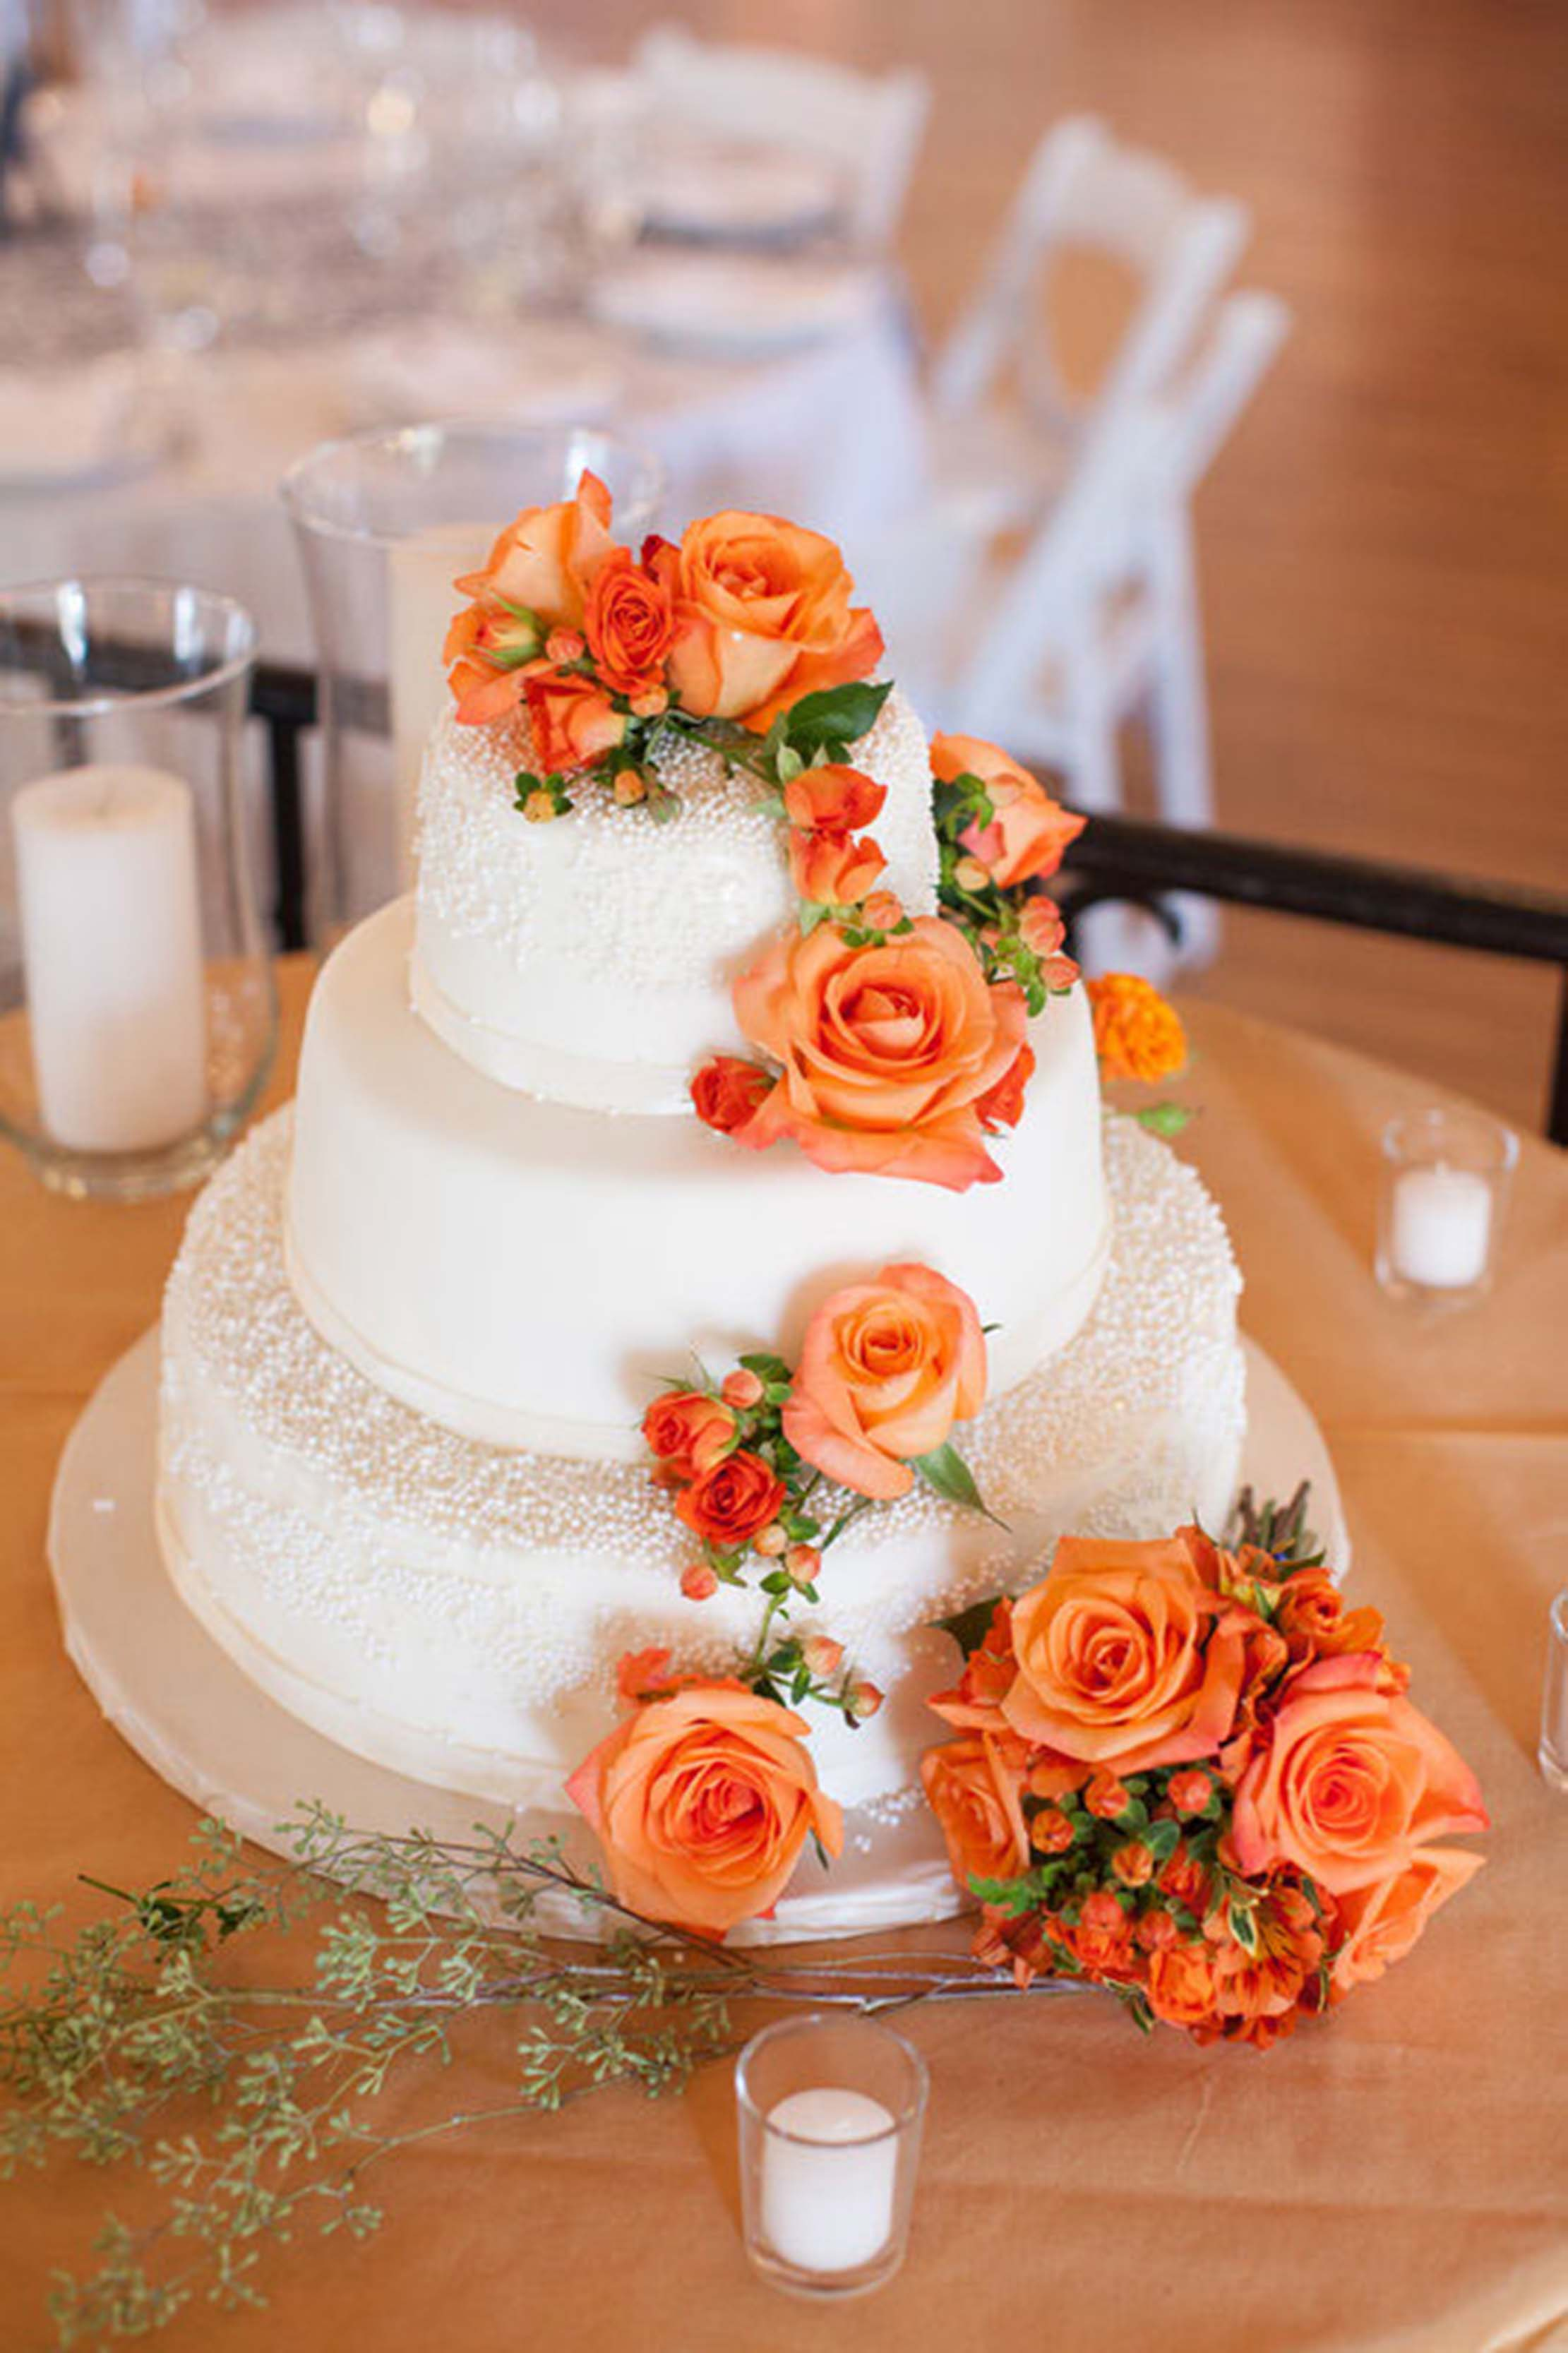 2-summer-tangerine-wedding-cake.jpg